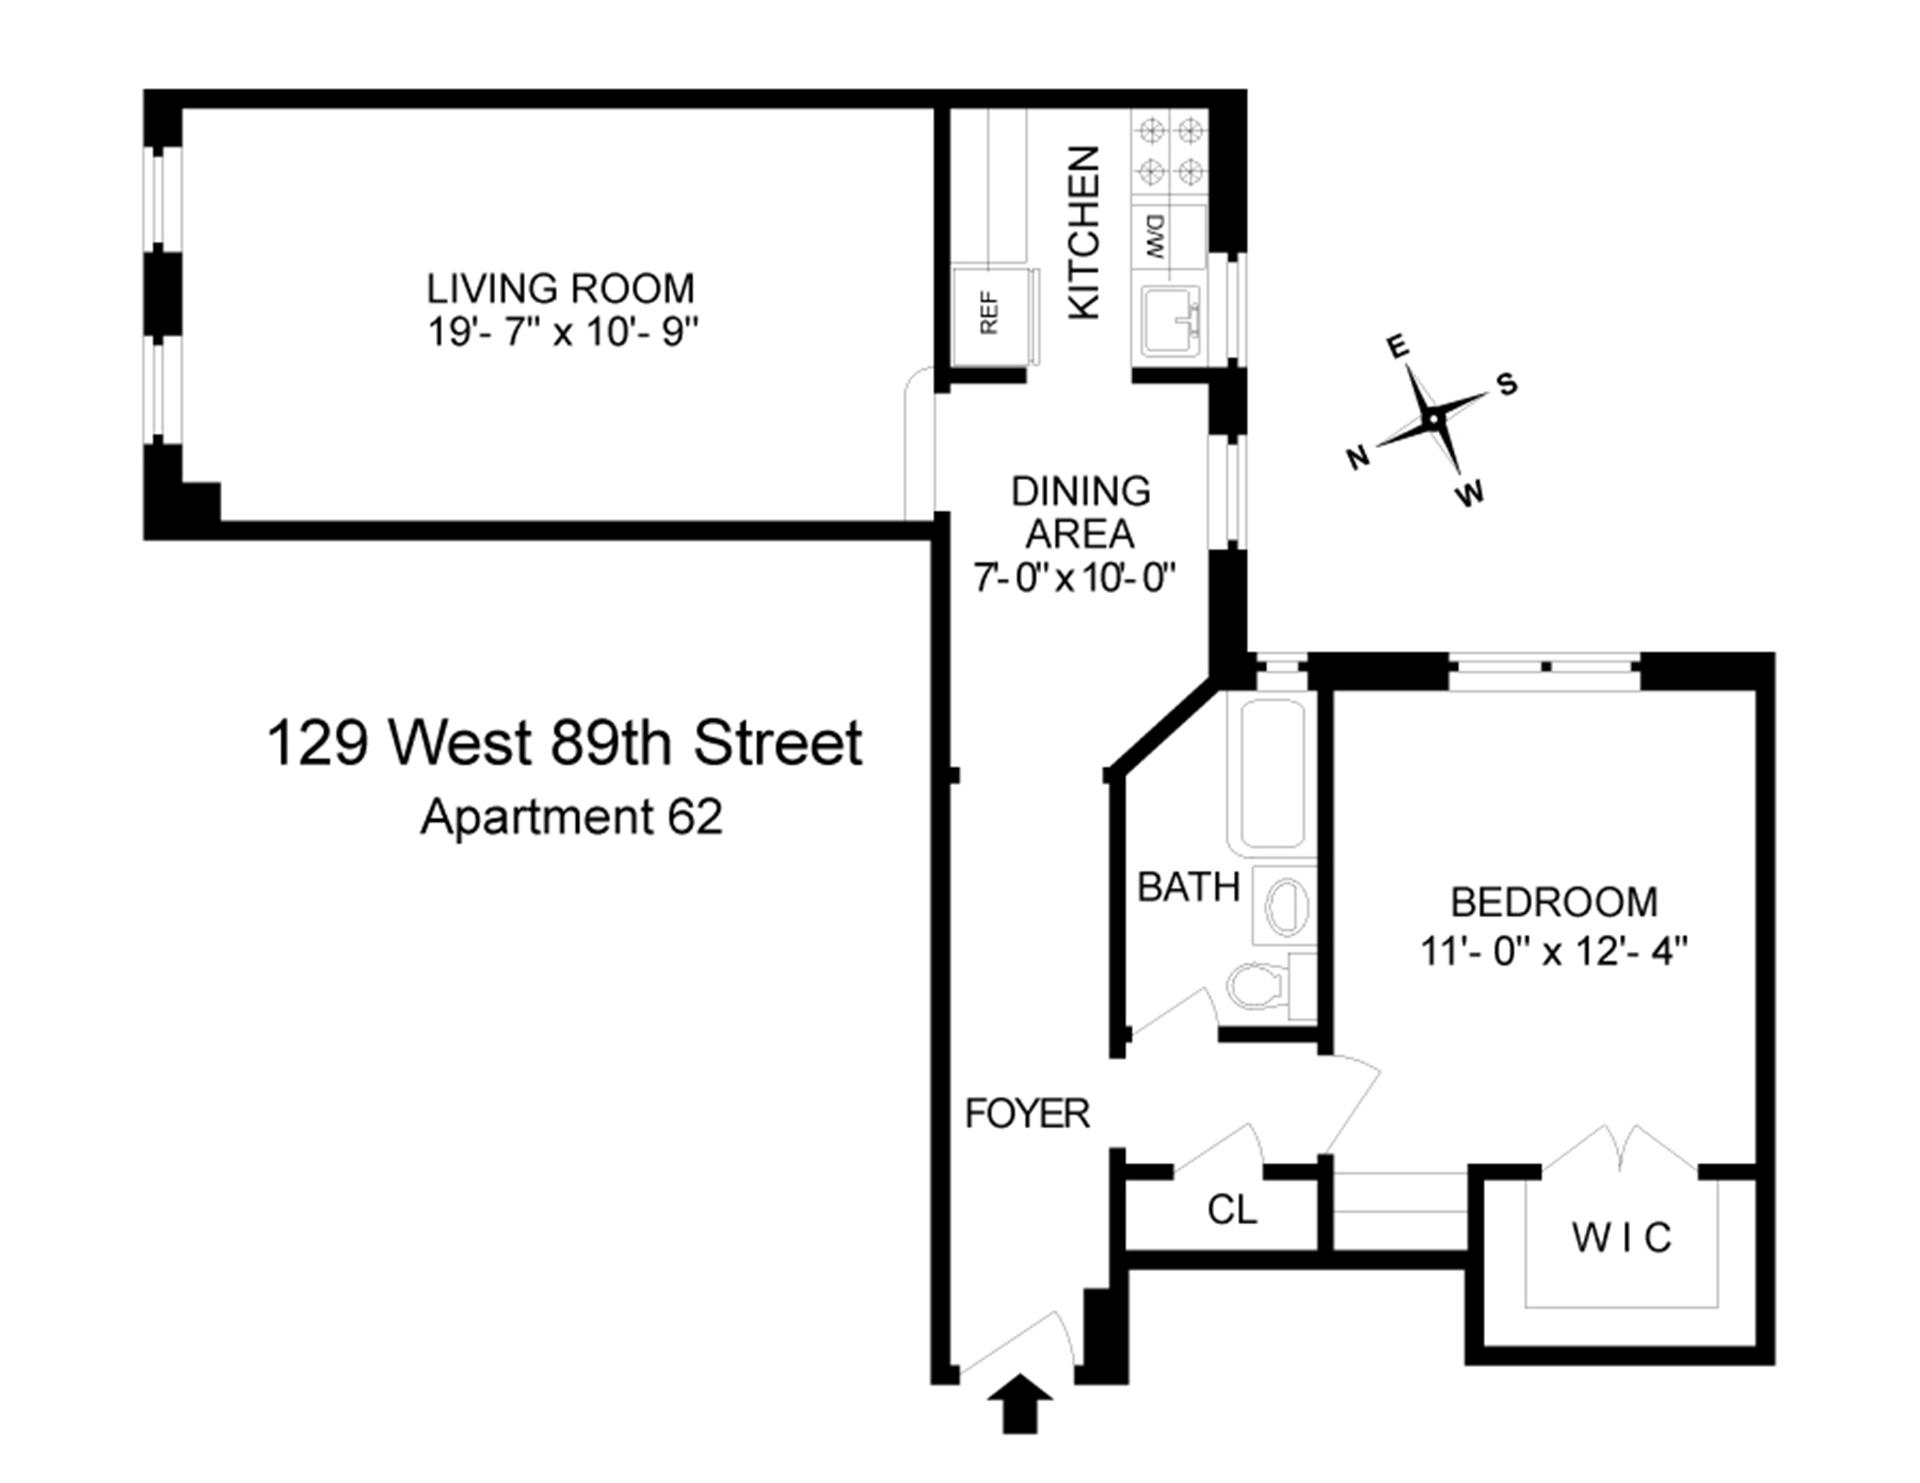 Floor plan of 129 West 89th St, 62 - Upper West Side, New York